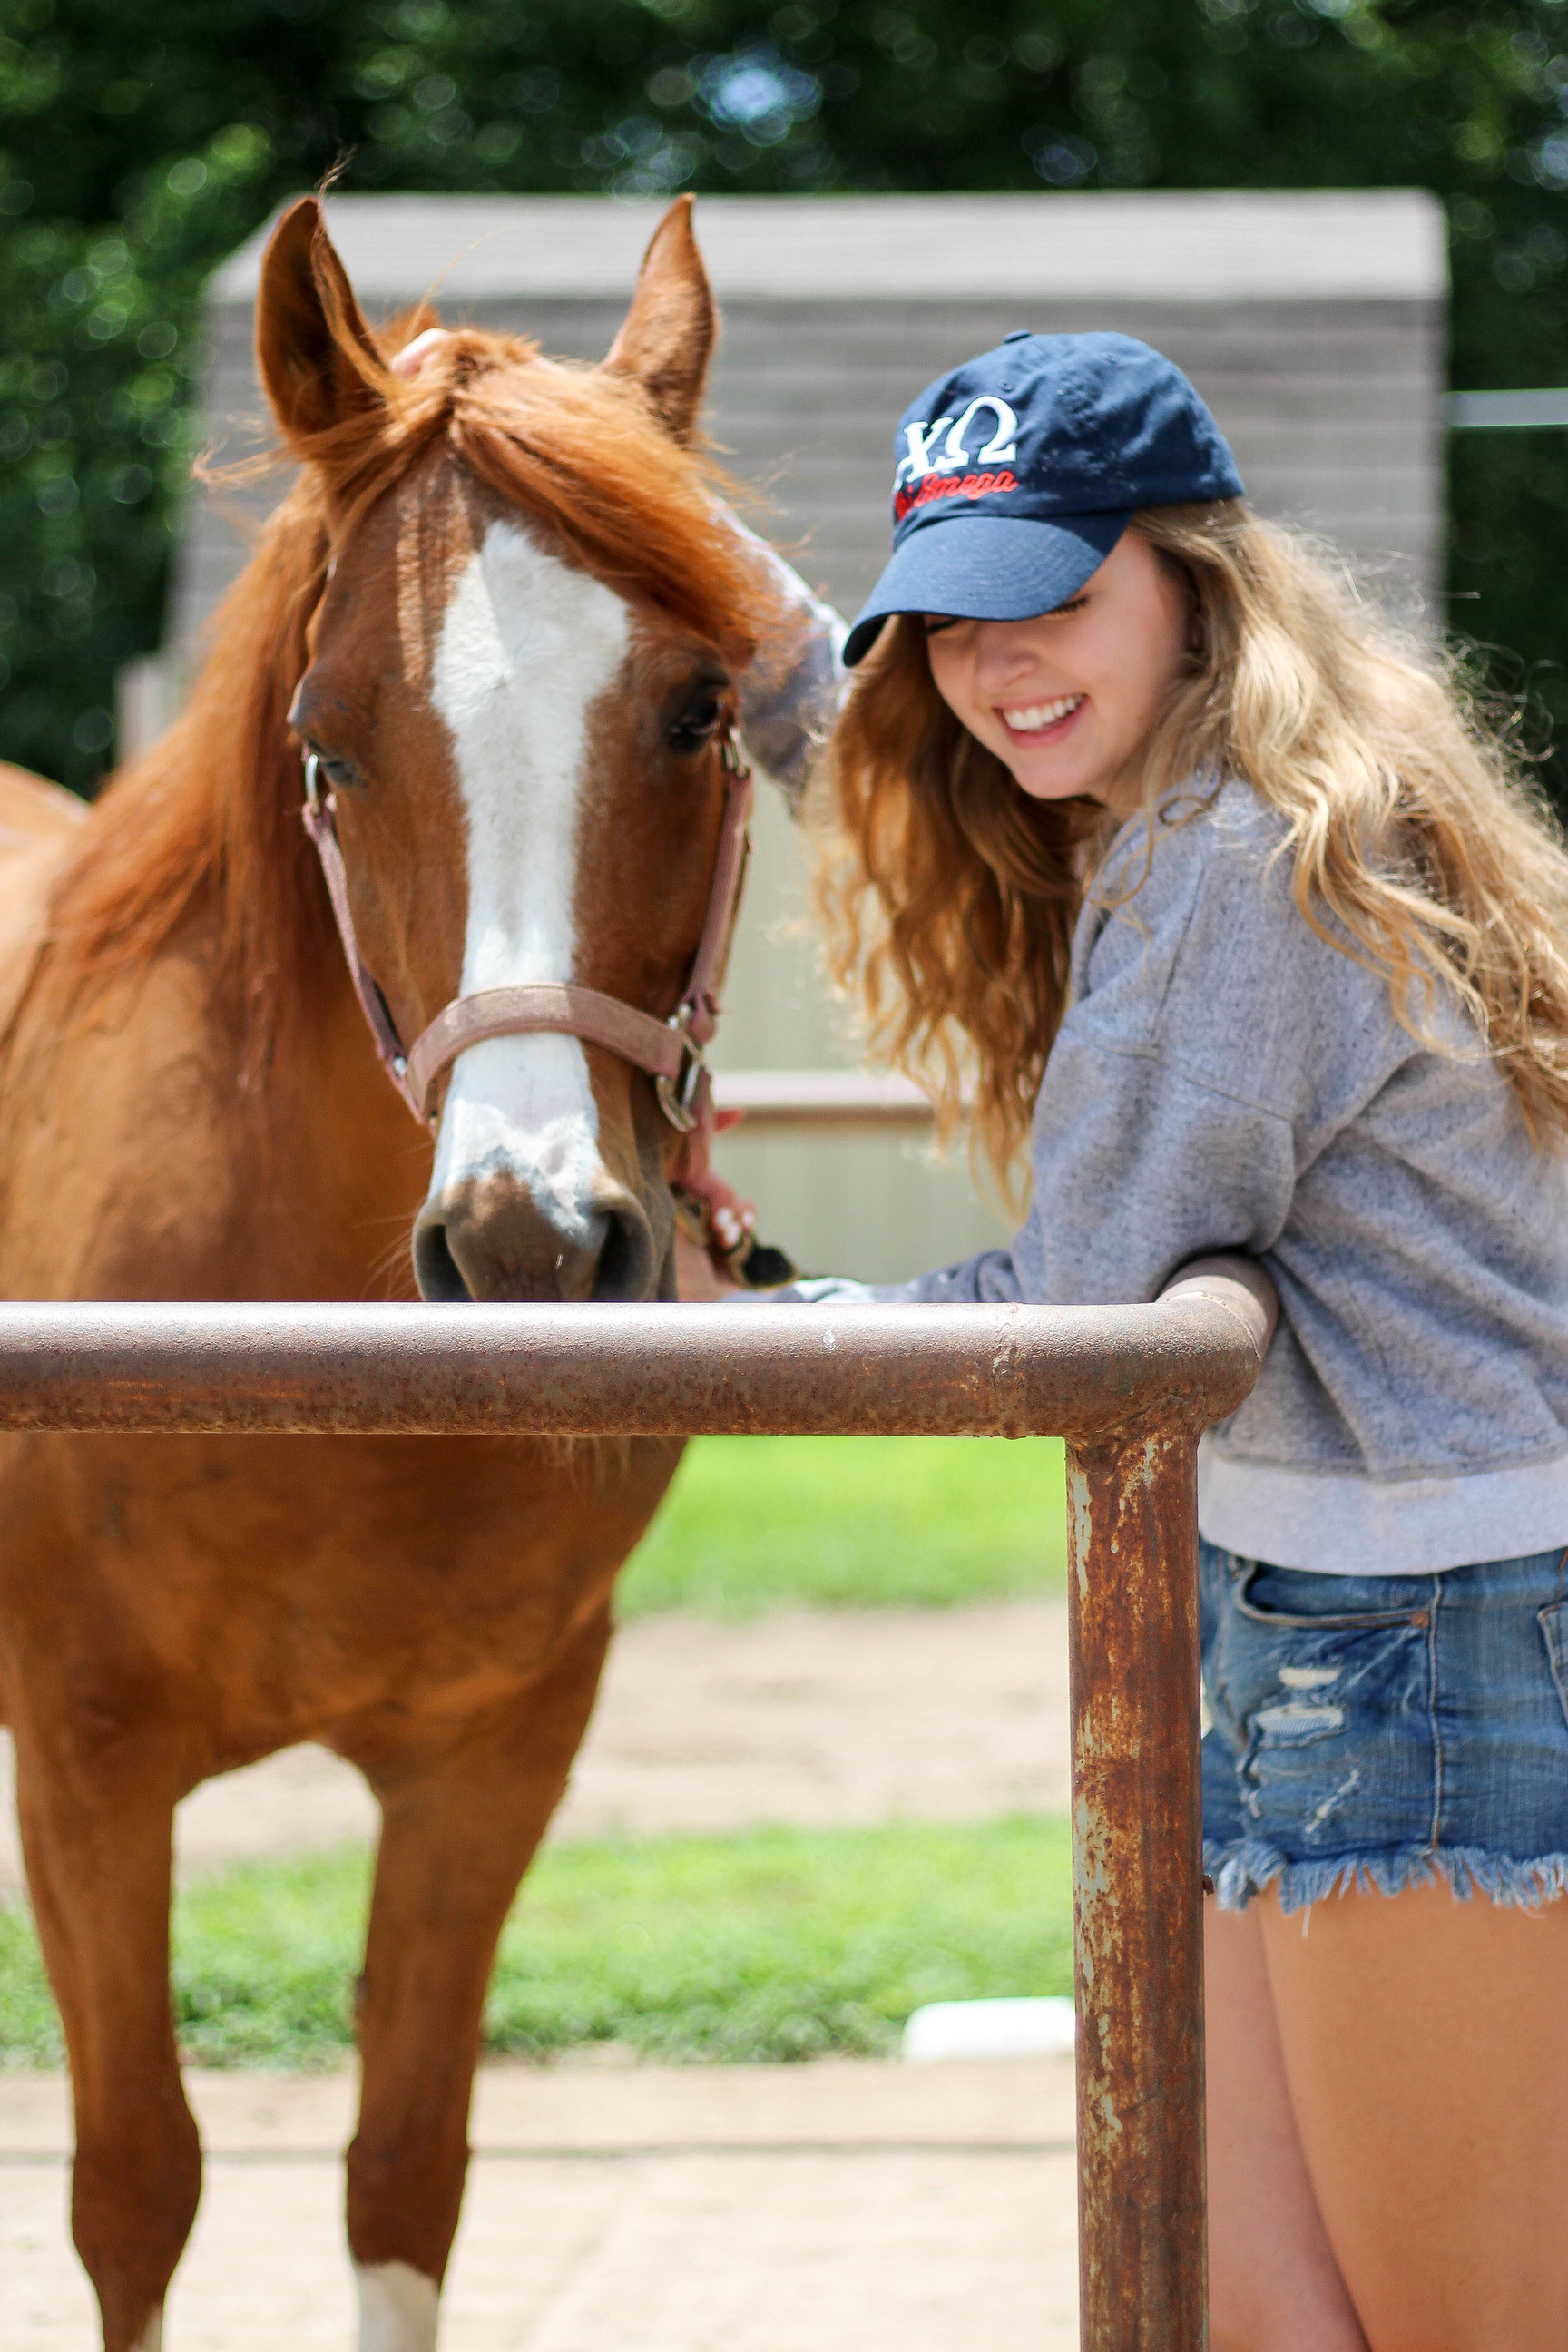 Horse back riding, horse and girl, horses, sorority hat, barn outfit, by lauren lindmark on daily dose of charm